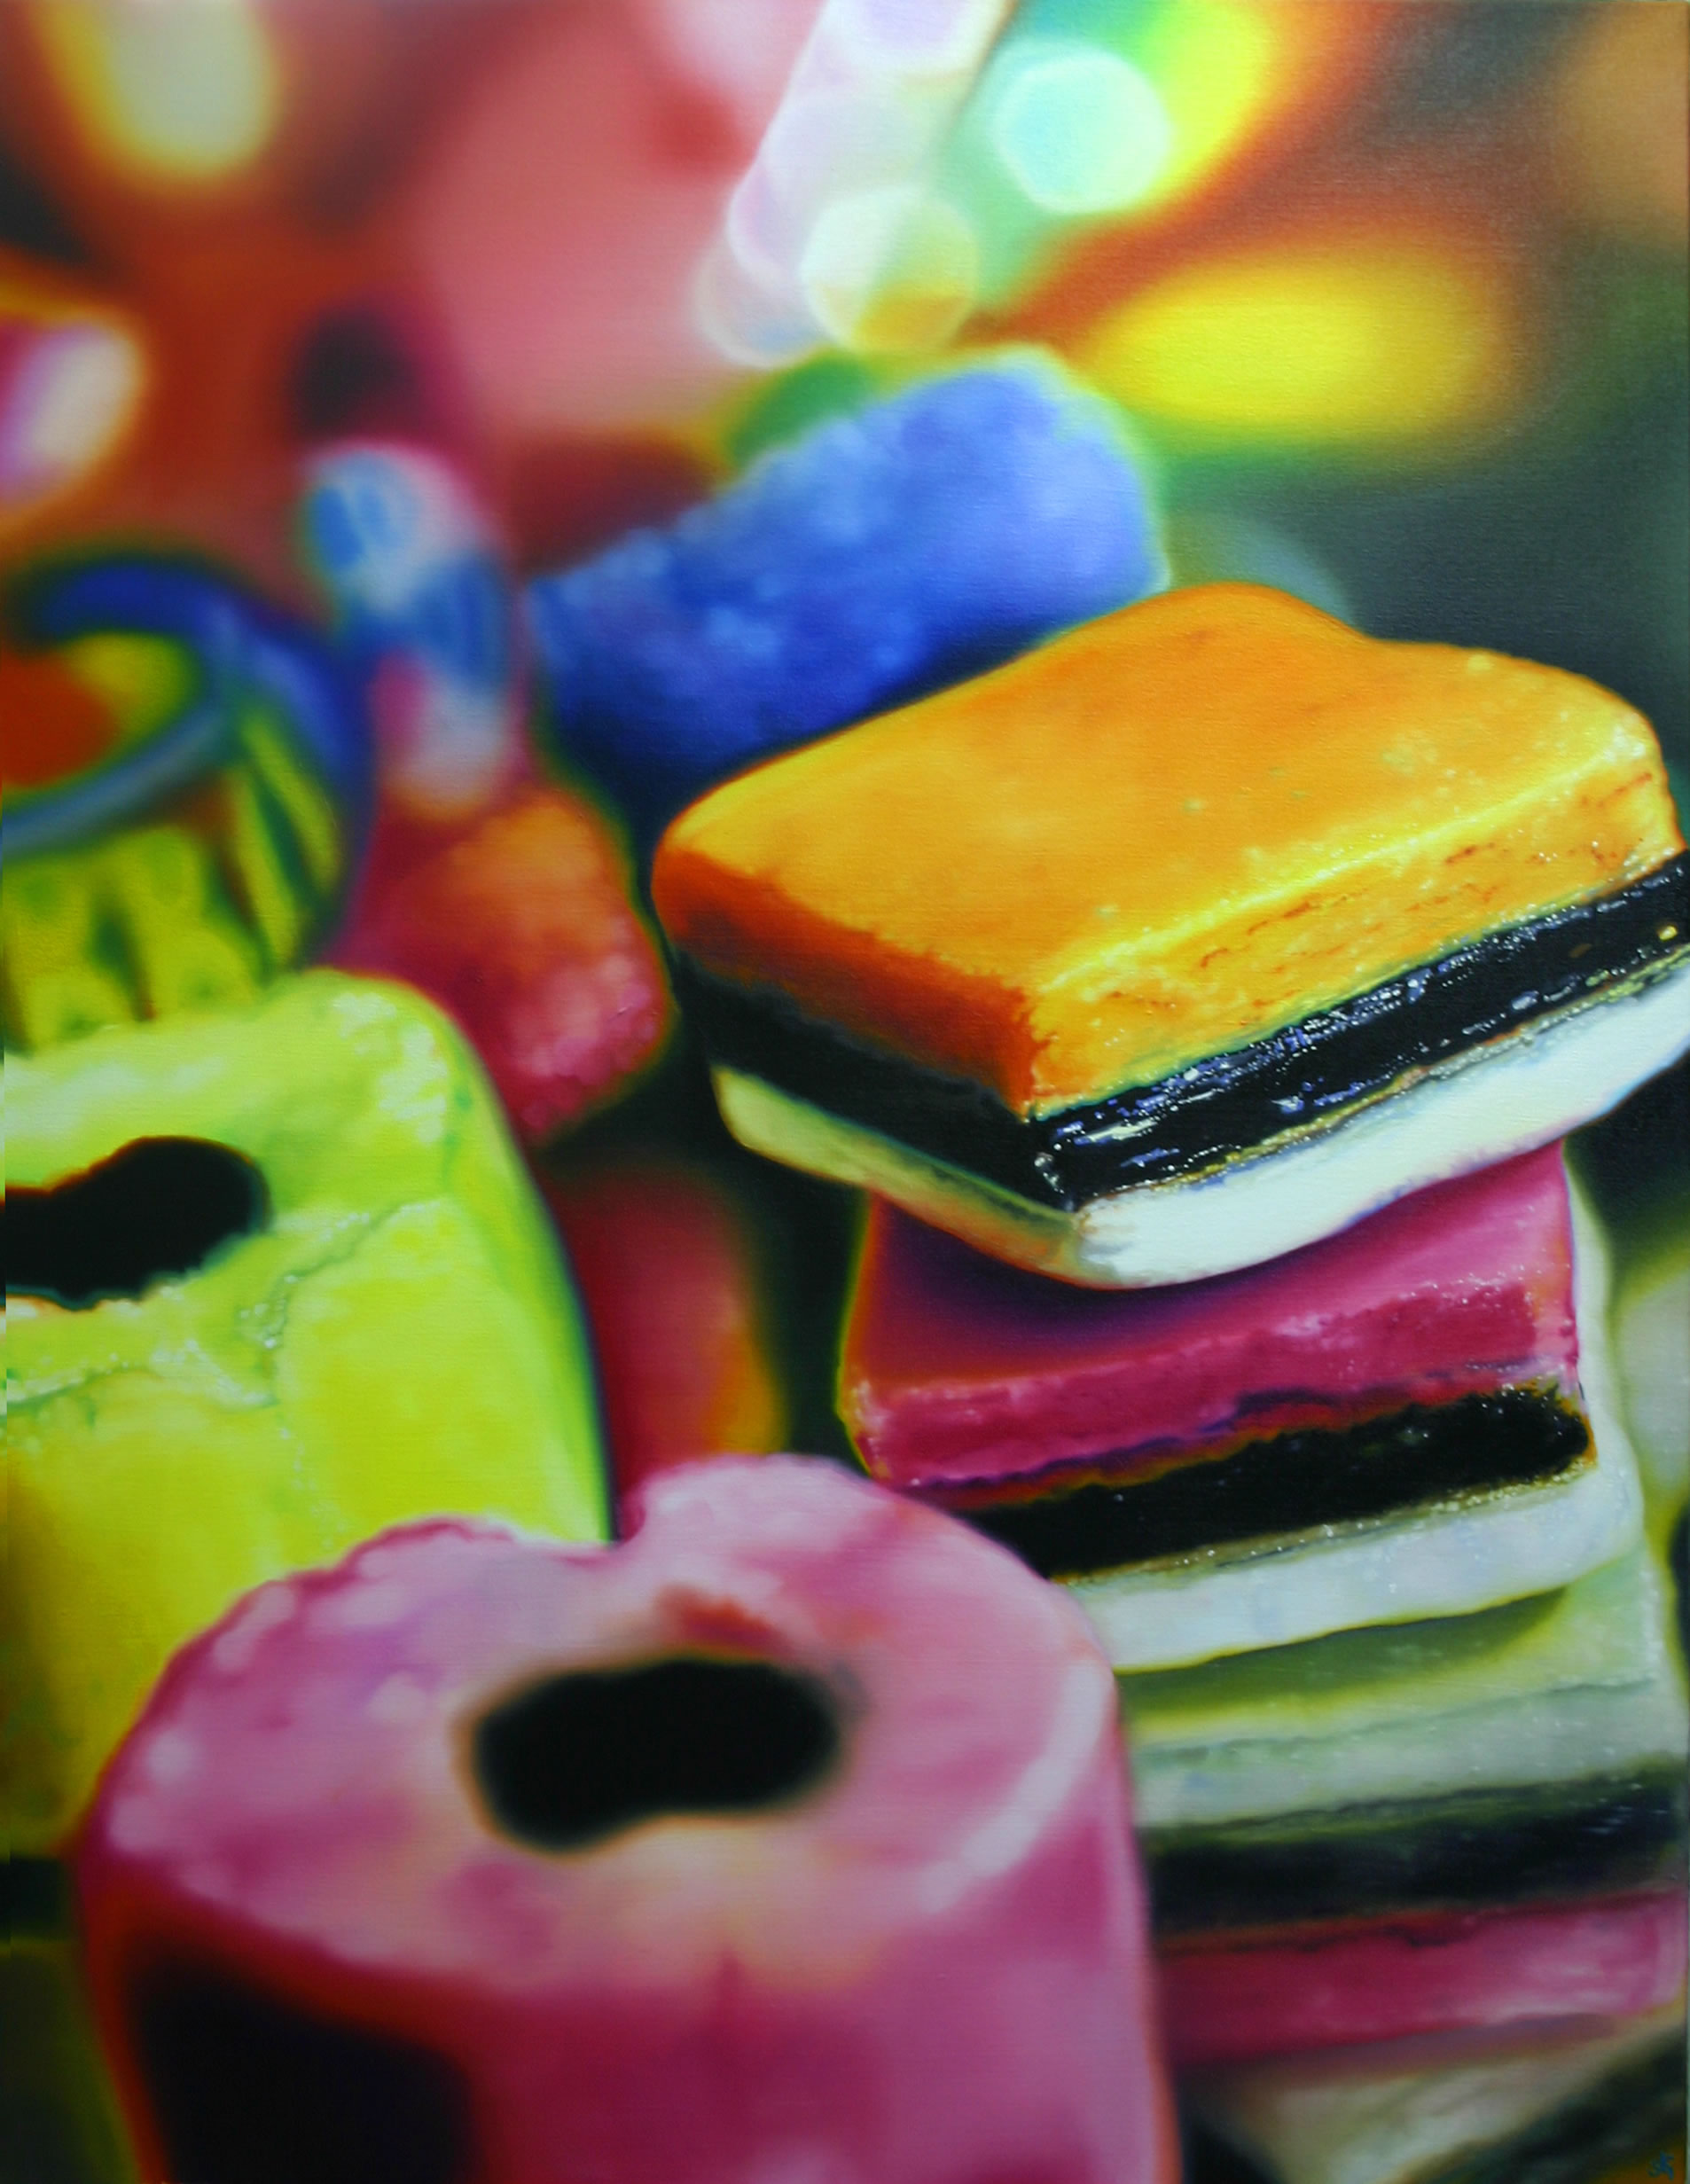 Sarah Graham painting - sweets for my sweet